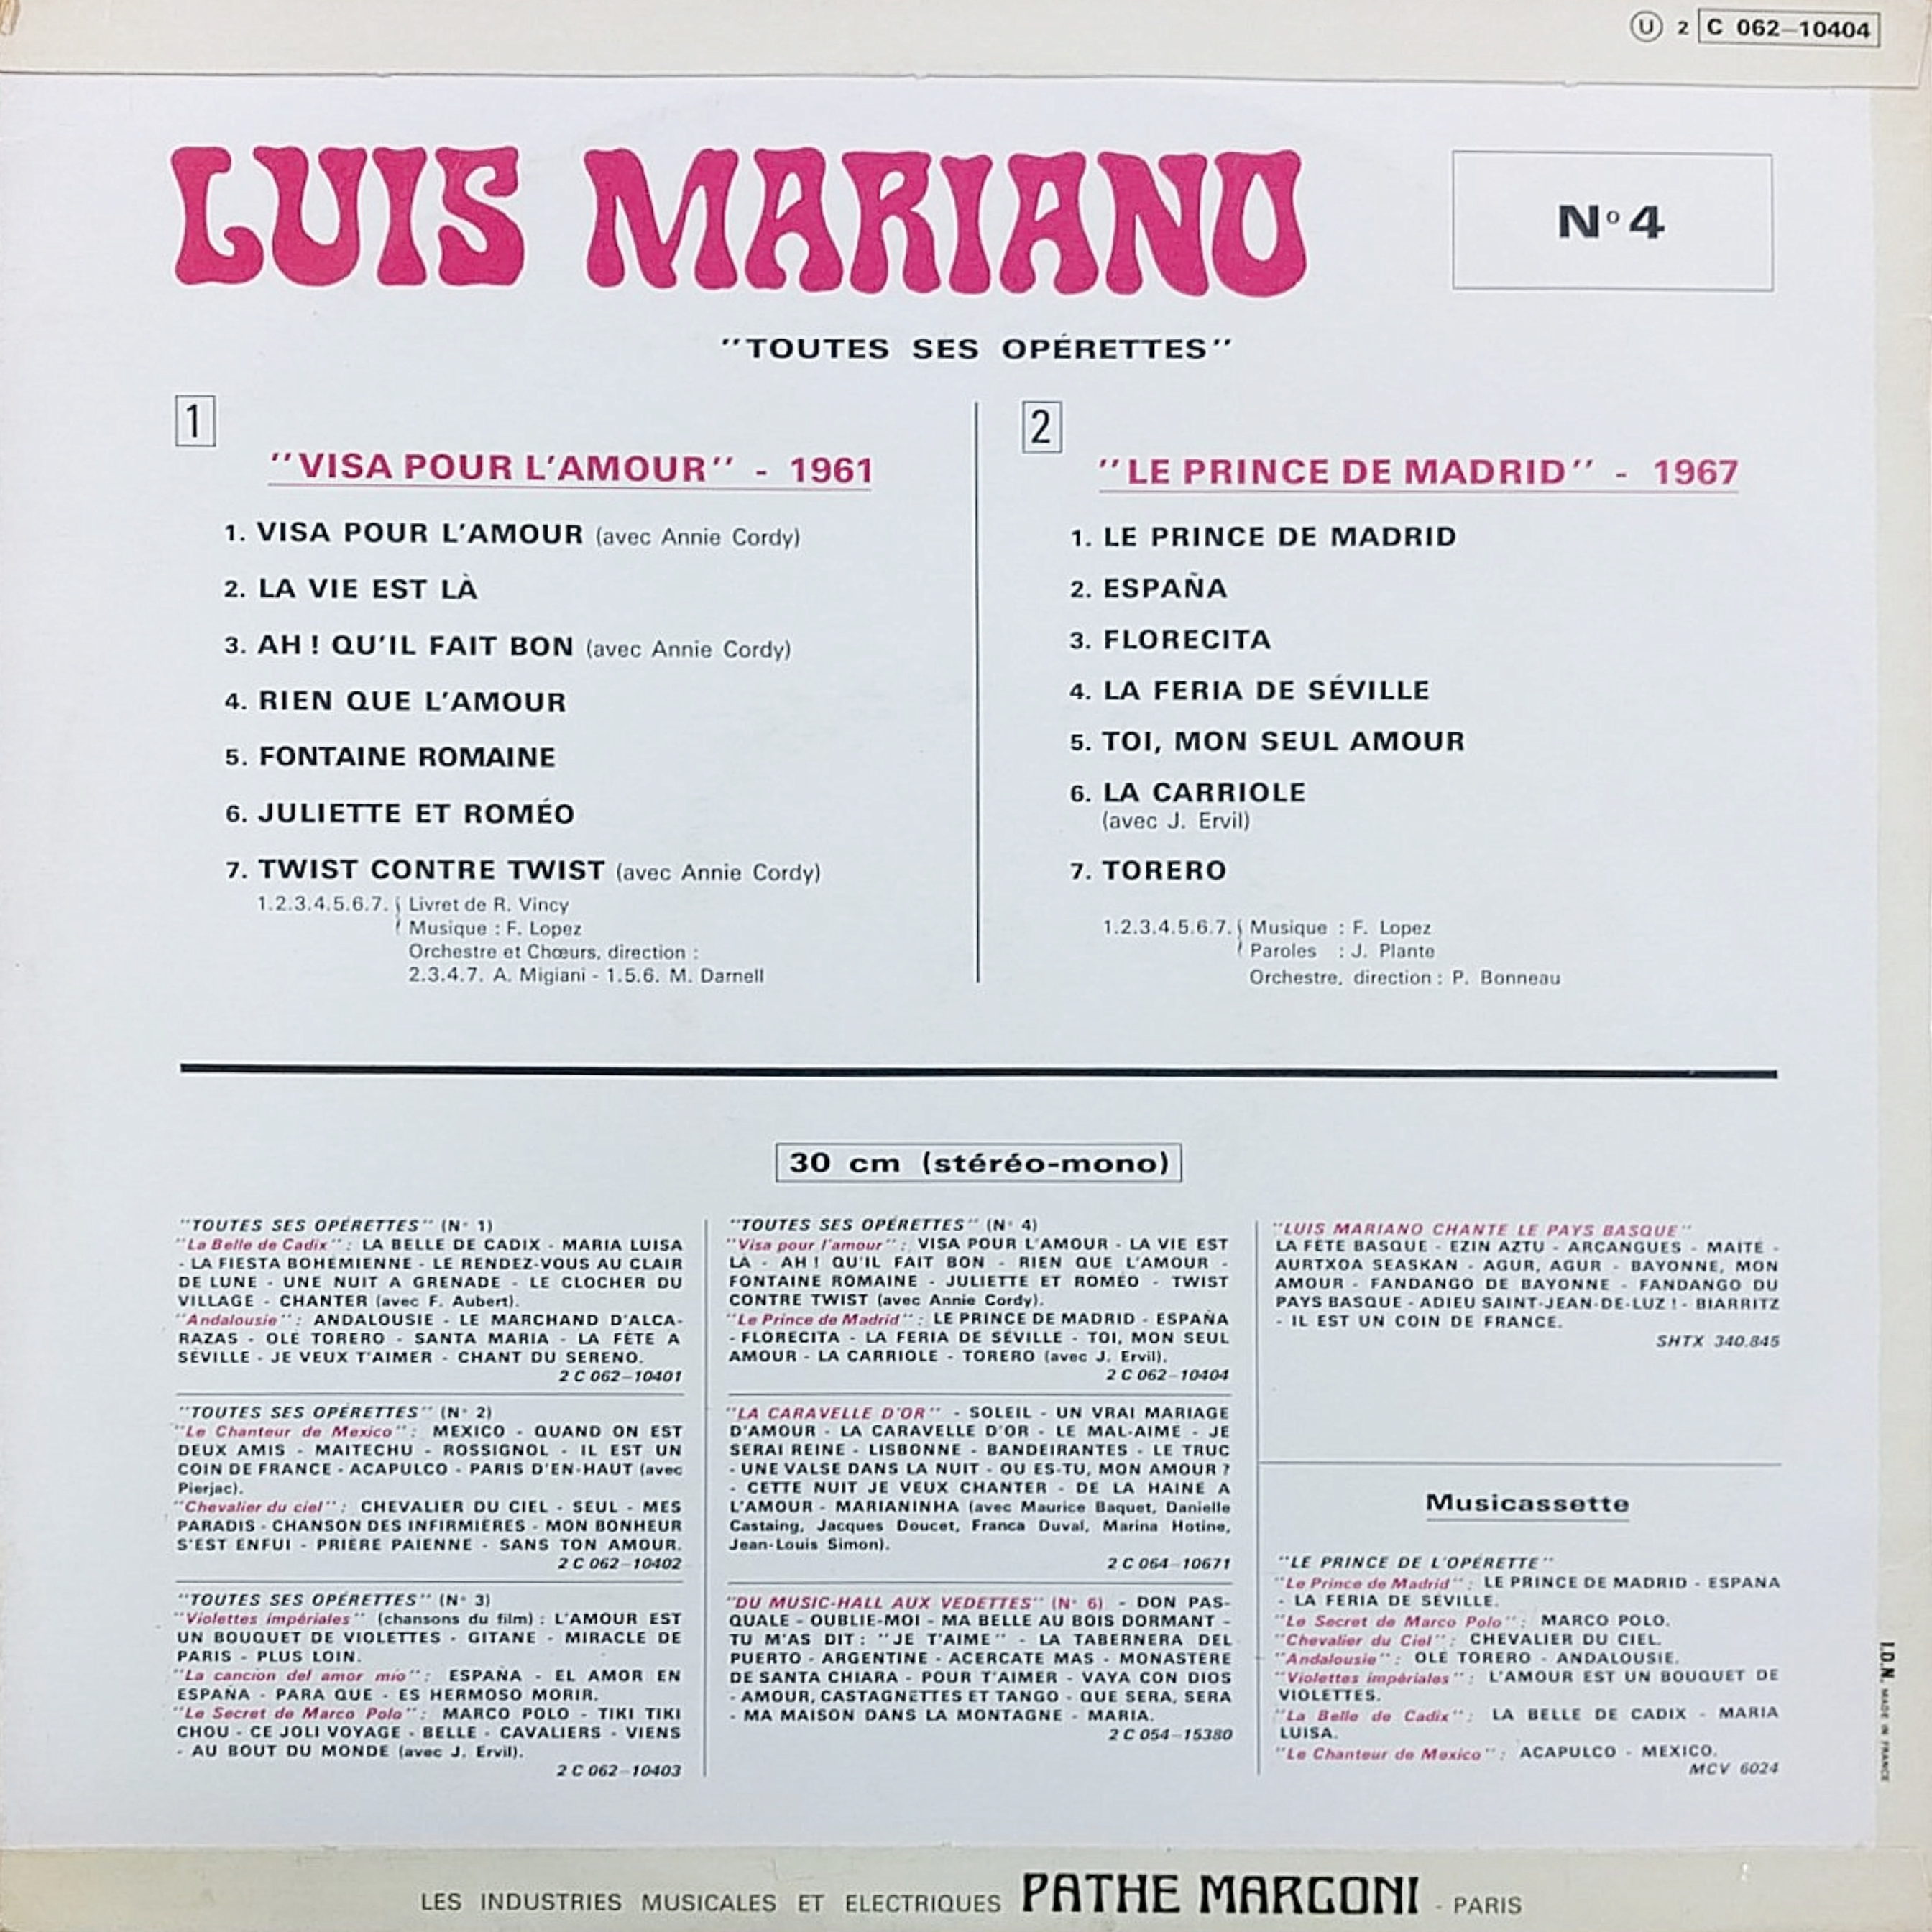 Luis Mariano – Toutes Ses Opérettes Nº 1–4 - Fonts In Use